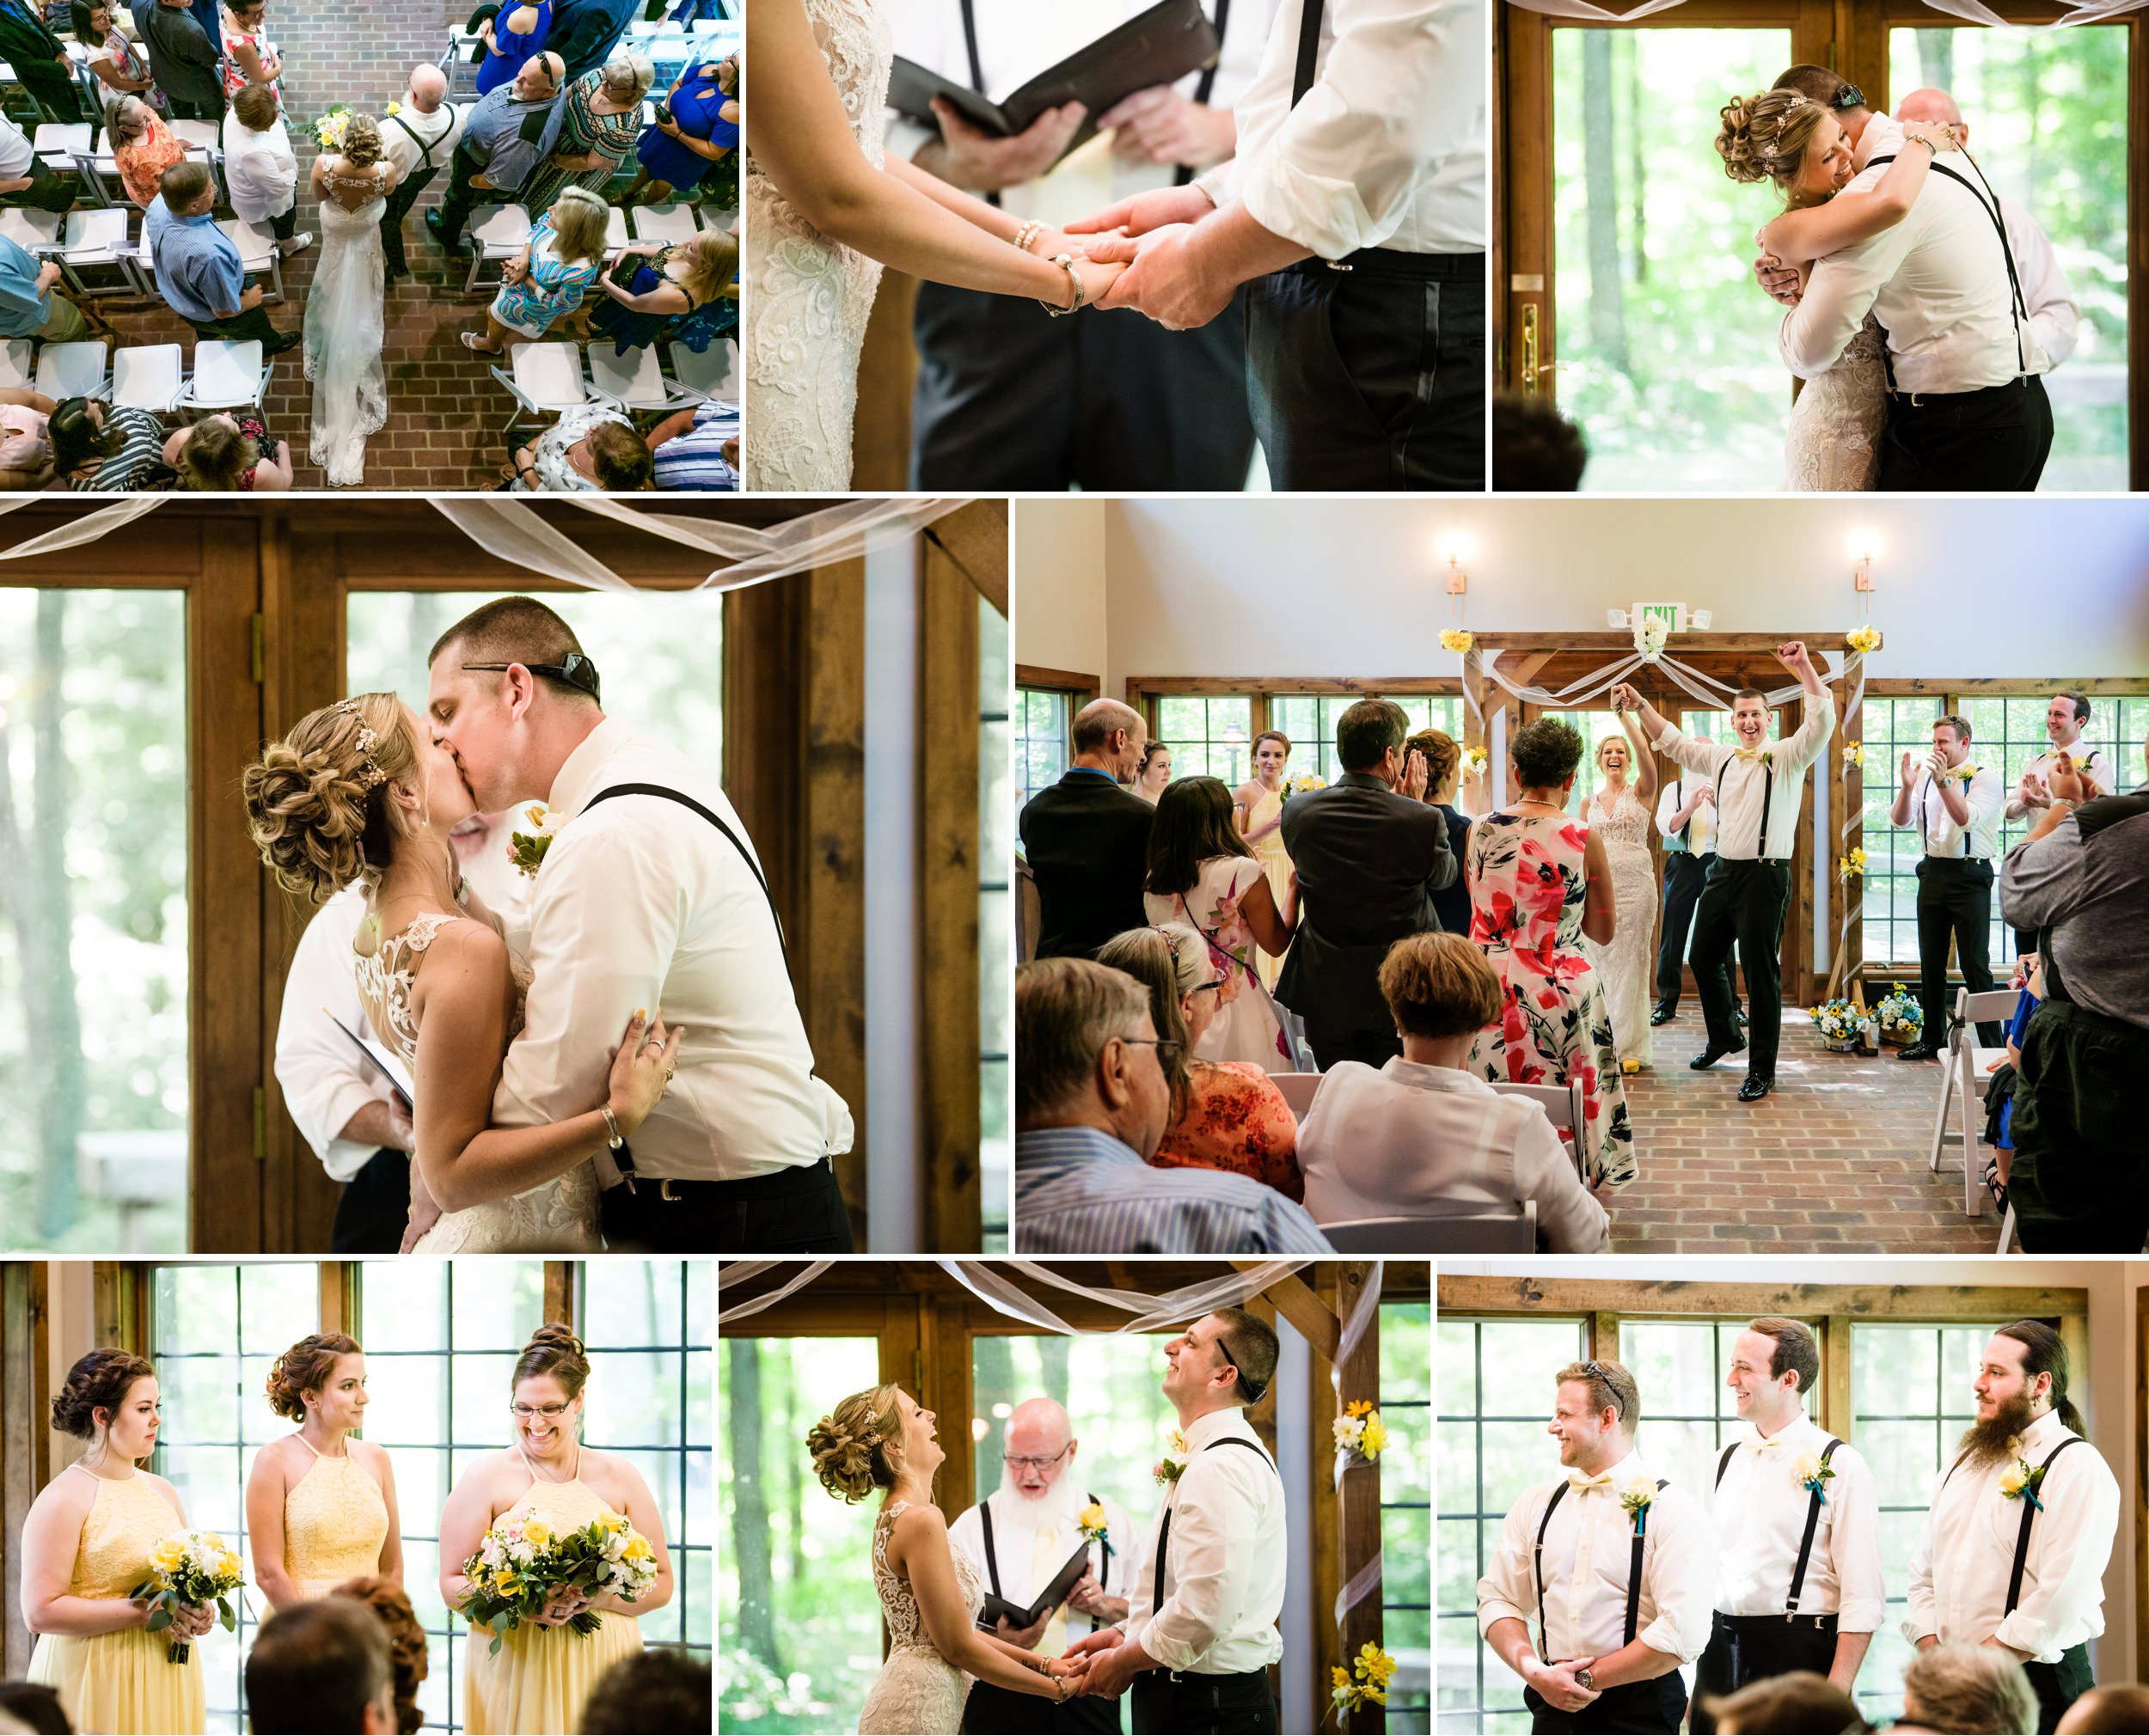 A morning wedding ceremony at The Brewery Lodge in Michigan City.